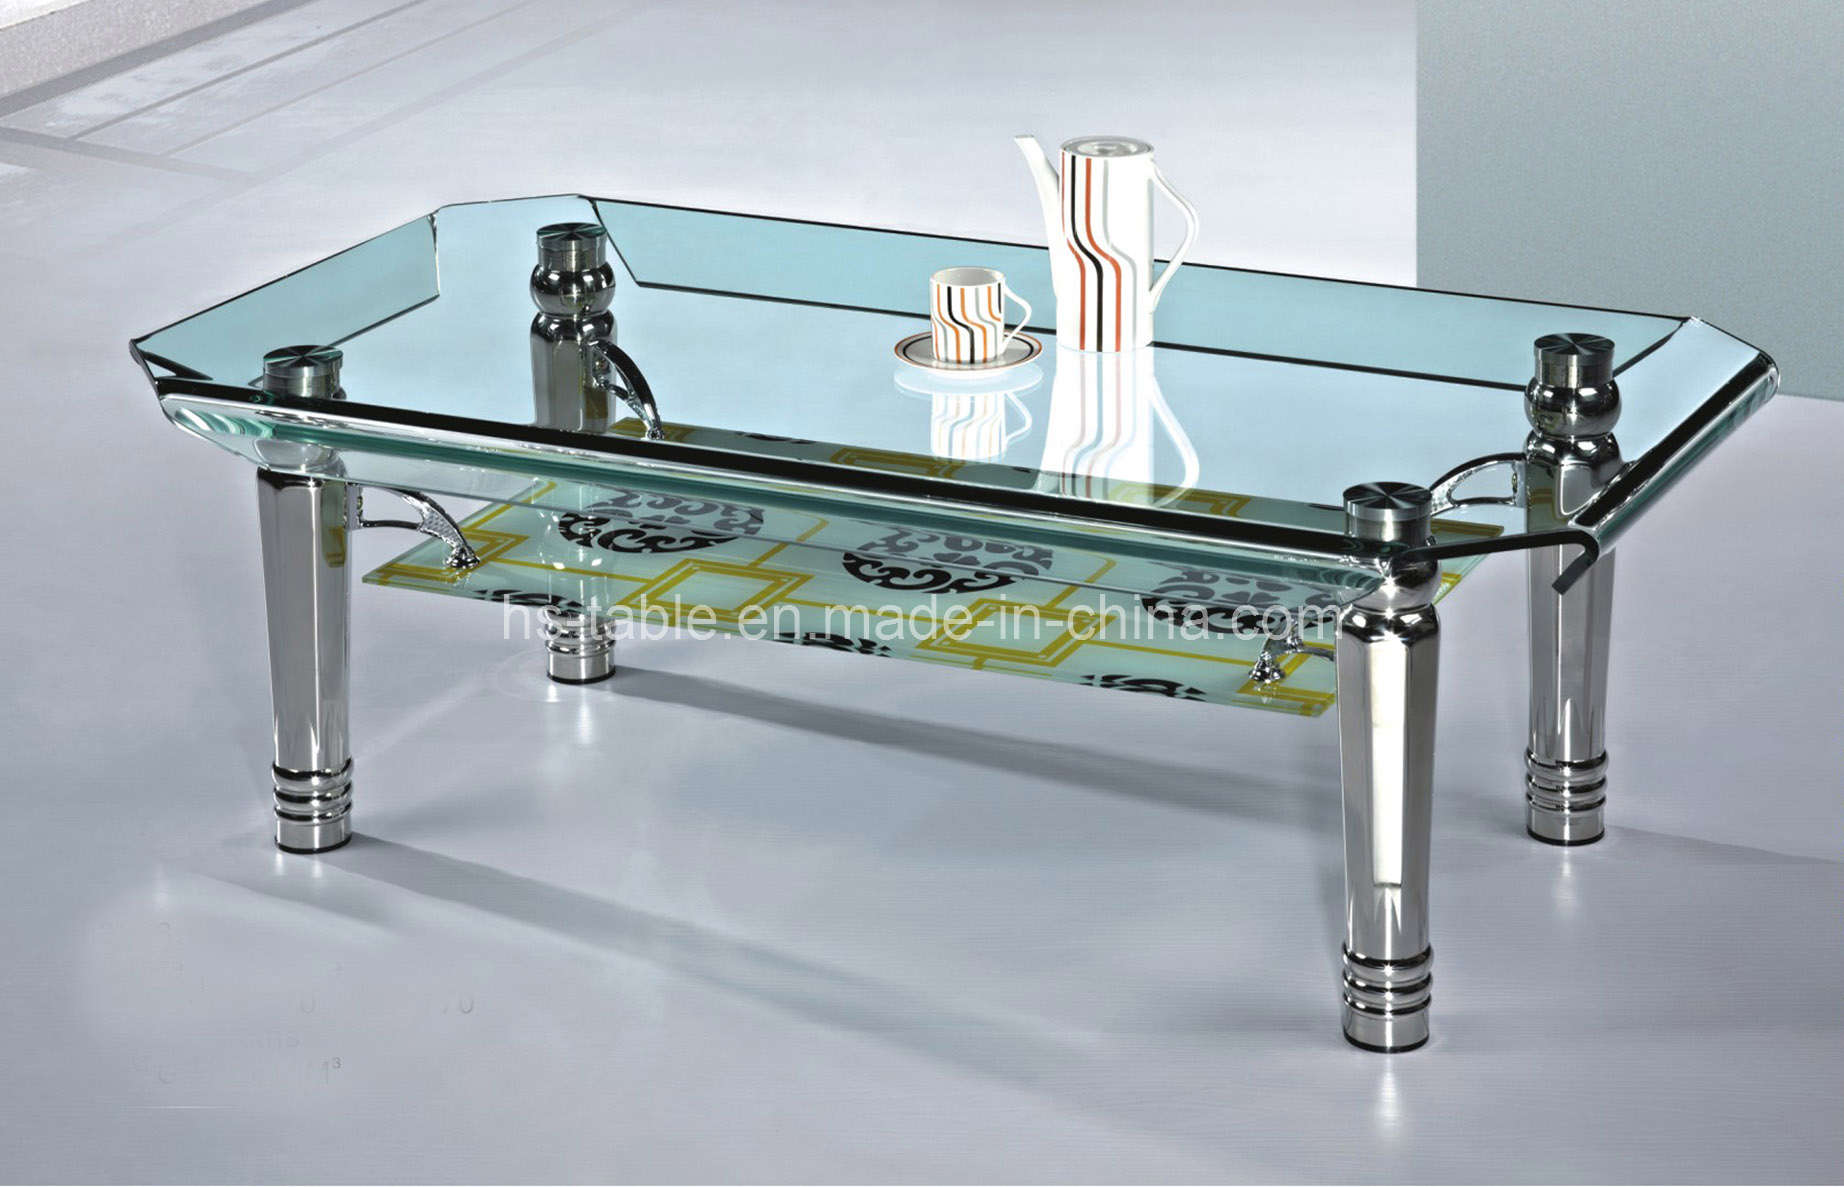 Glass-Replacement-for-Coffee-Table-is-this-lovely-recycled-wood-iron-and-pine-with-one-of-our-Younger-sectional-sofas (Image 3 of 10)